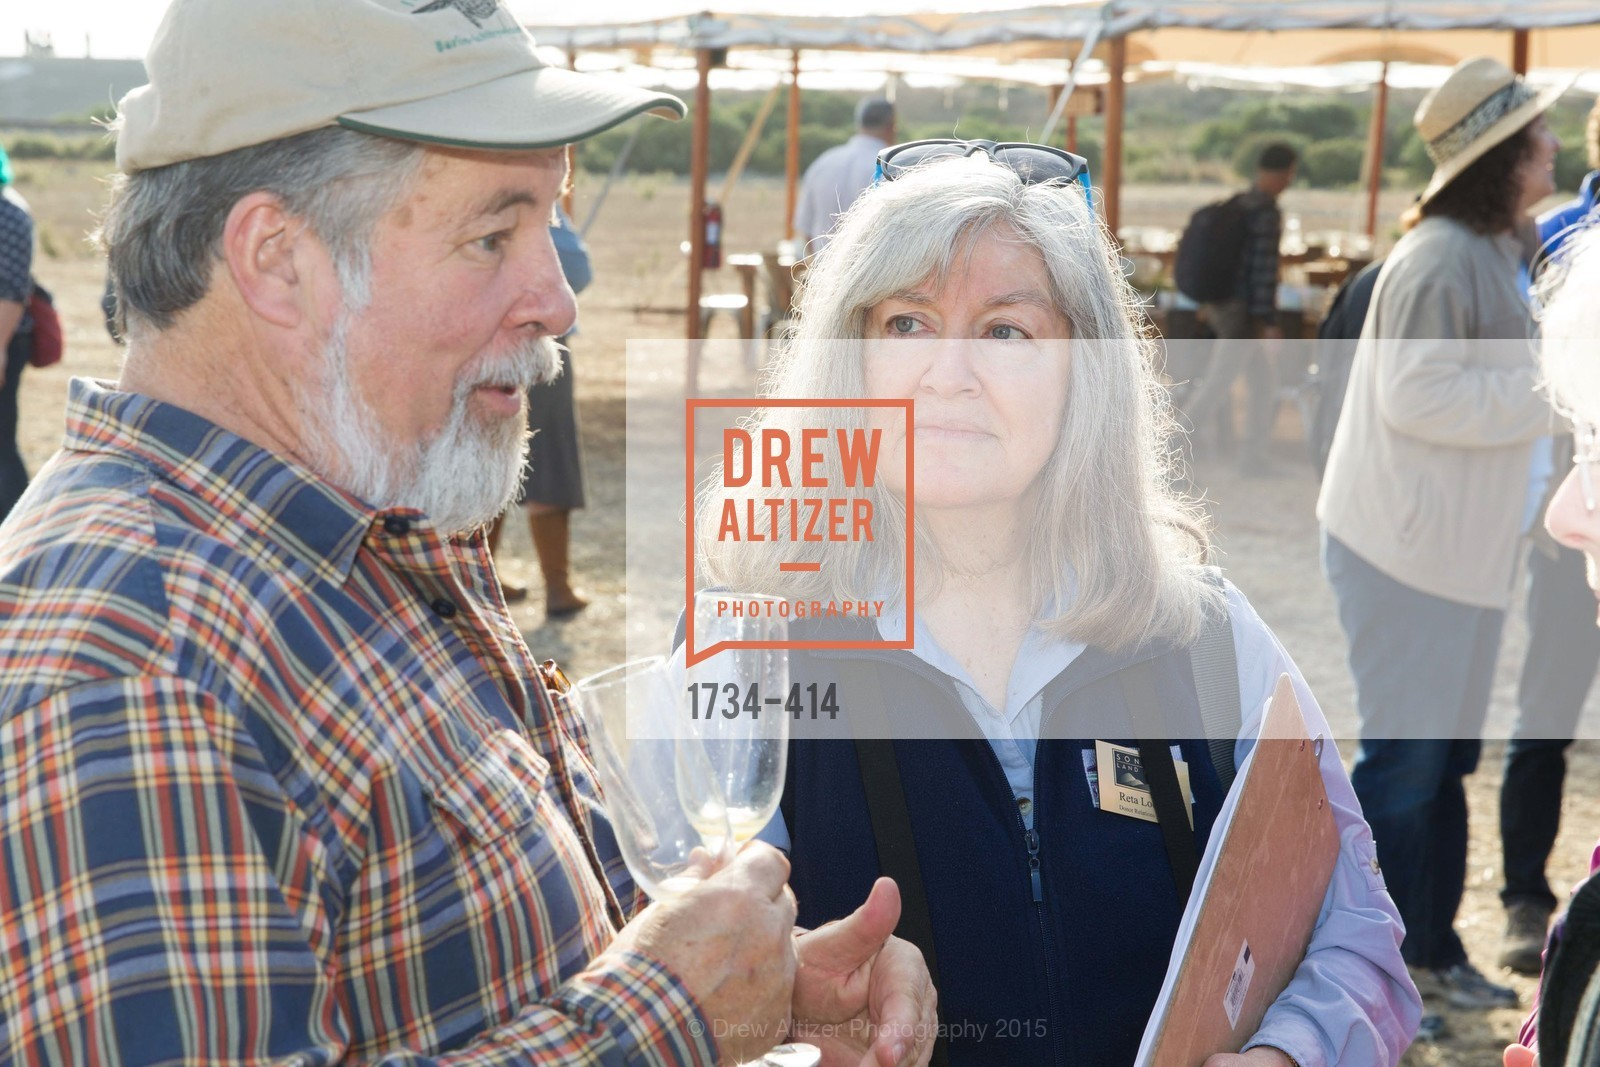 Extras, SEA CHANGE at Sears Point with Sonoma Land Trust, October 25th, 2015, Photo,Drew Altizer, Drew Altizer Photography, full-service agency, private events, San Francisco photographer, photographer california